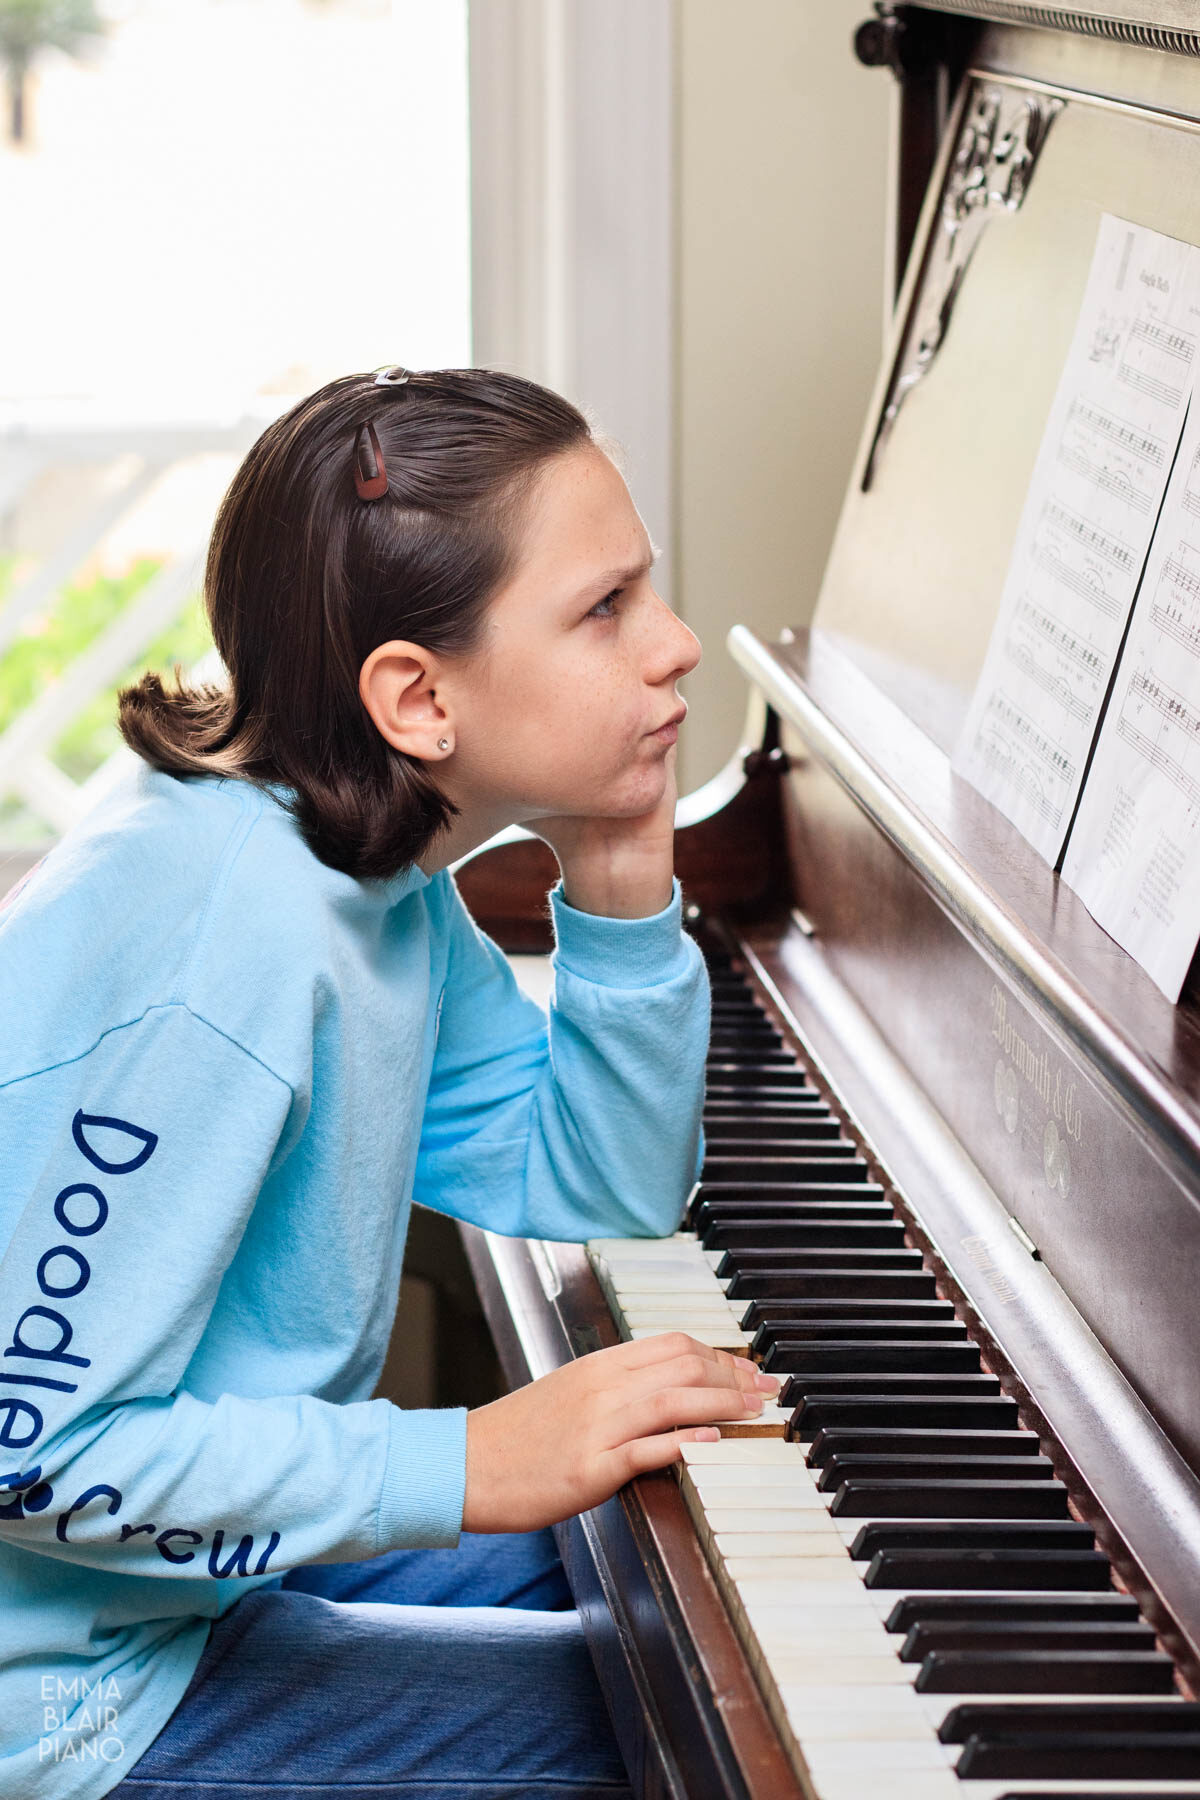 girl frowning at sheet music while playing the piano